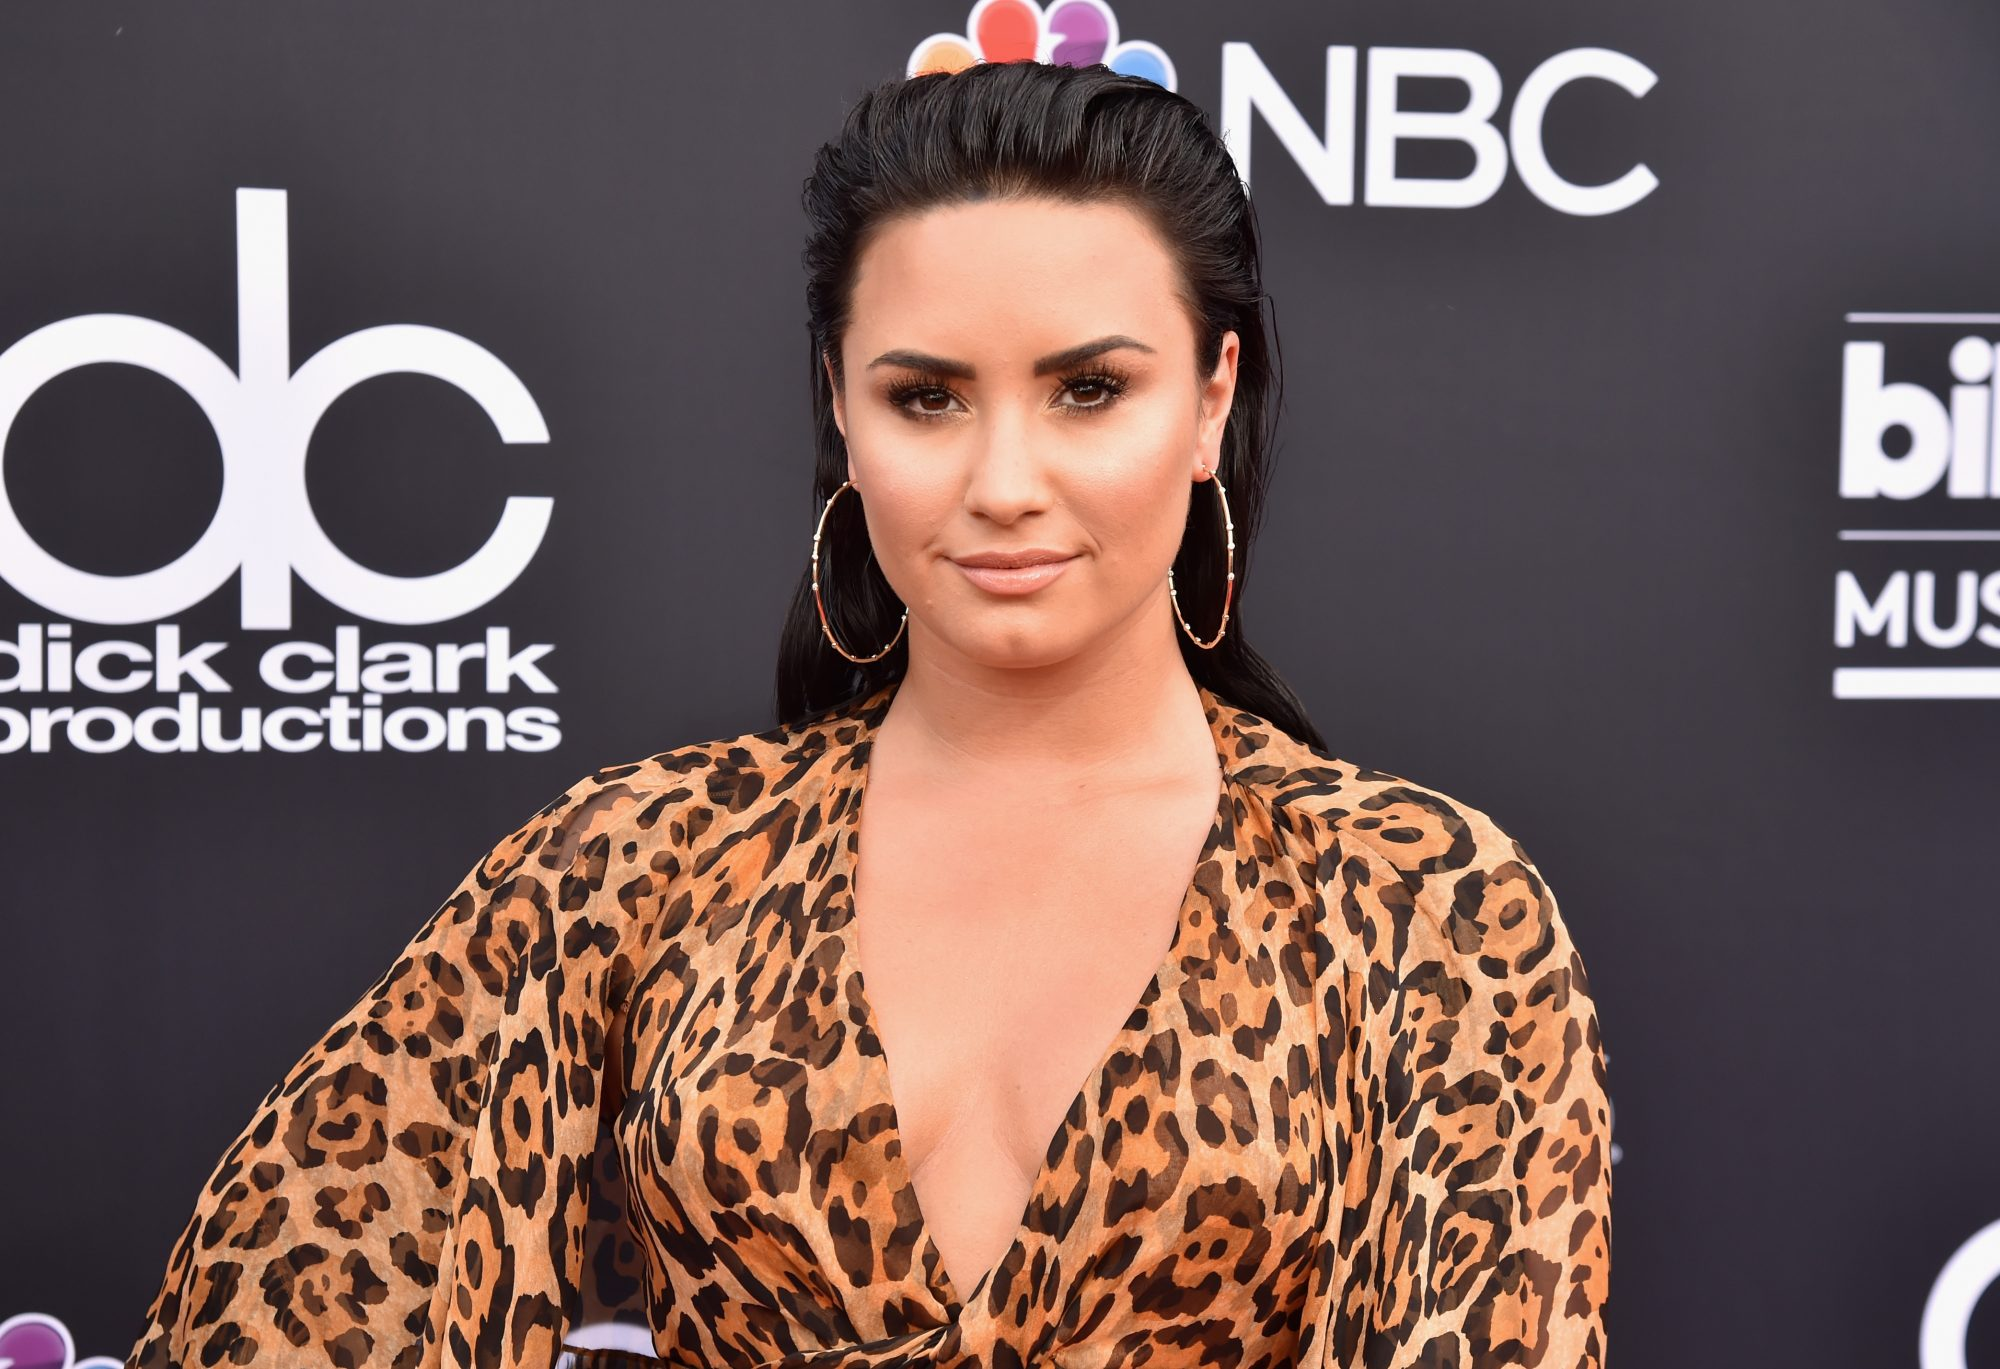 Demi Lovato Shared a Body-Positive Photo of Her Cellulite